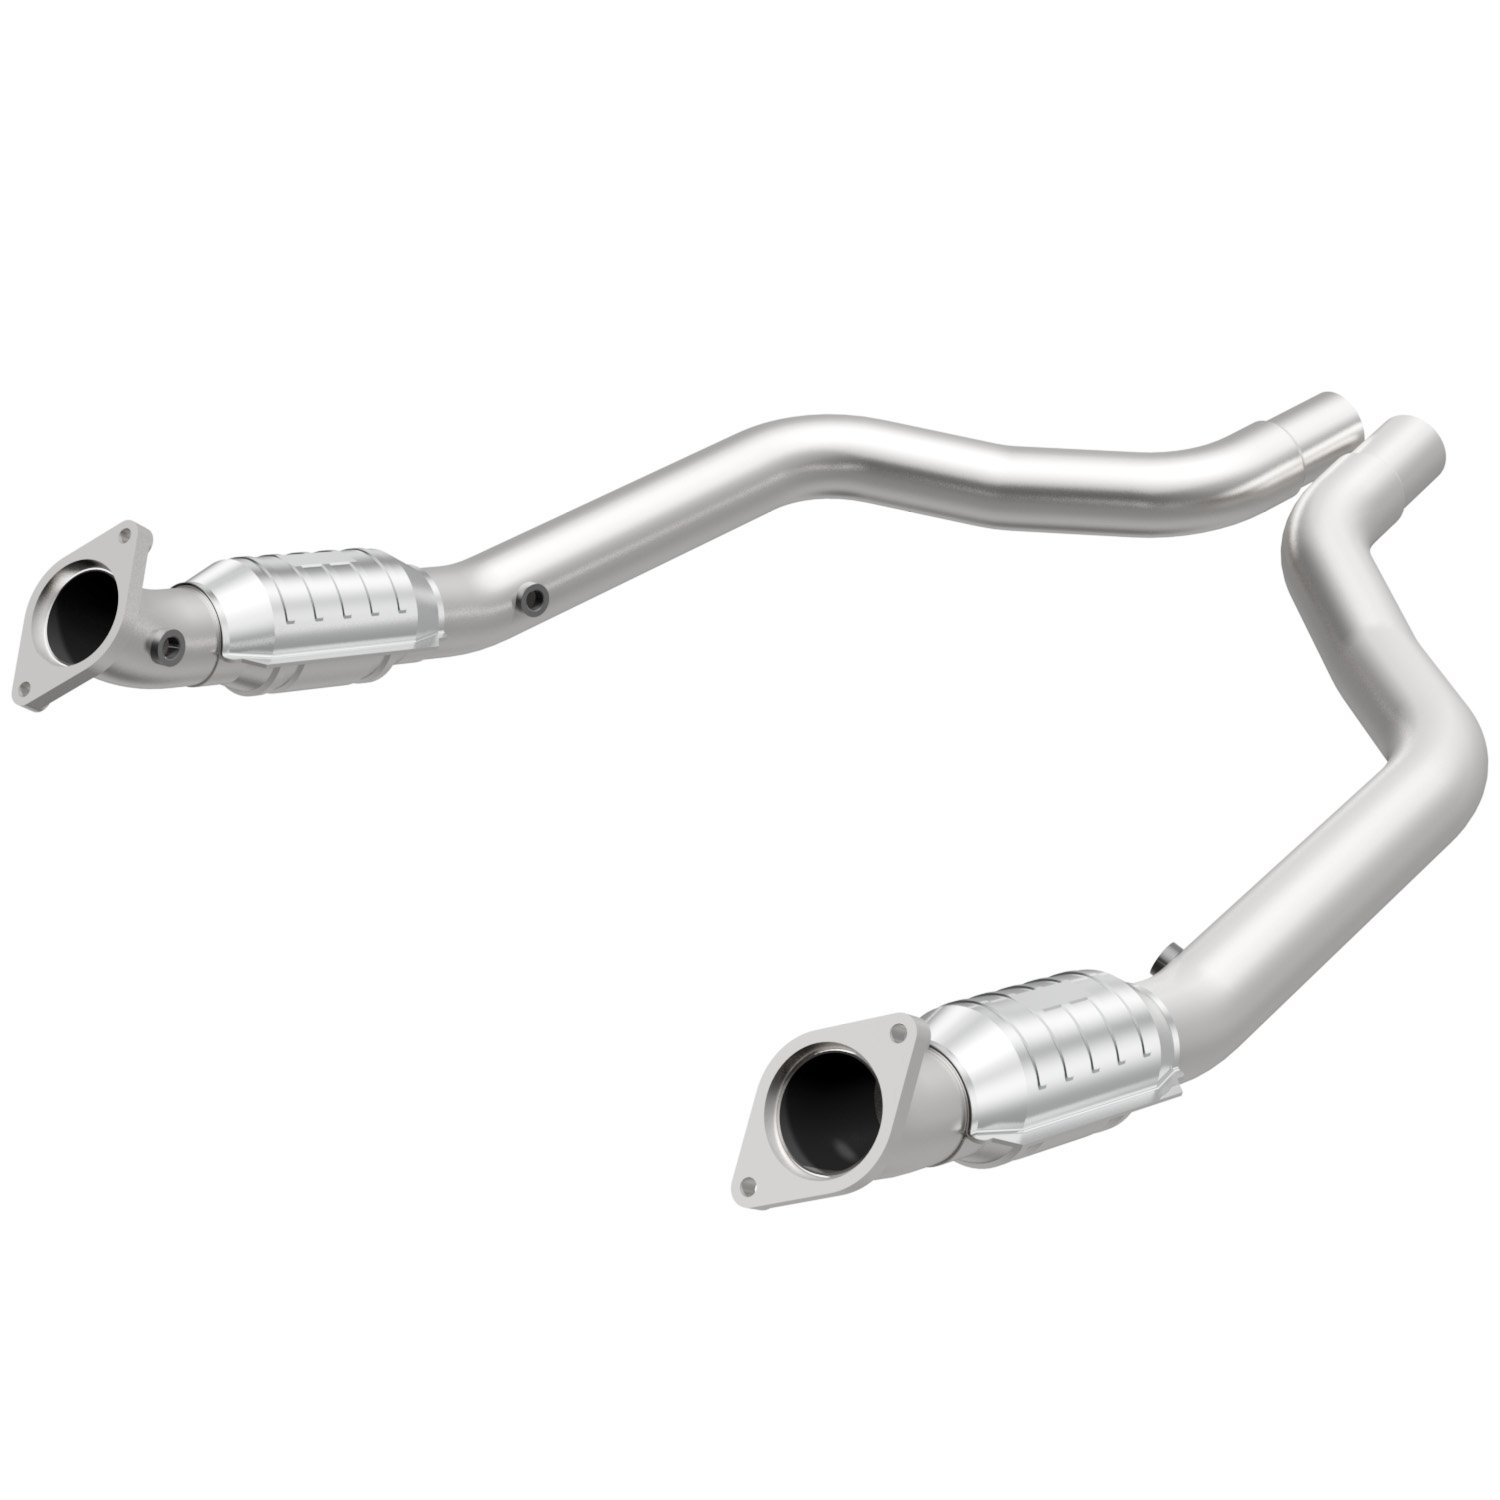 Magnaflow 16420 Direct-Fit Catalytic Converter